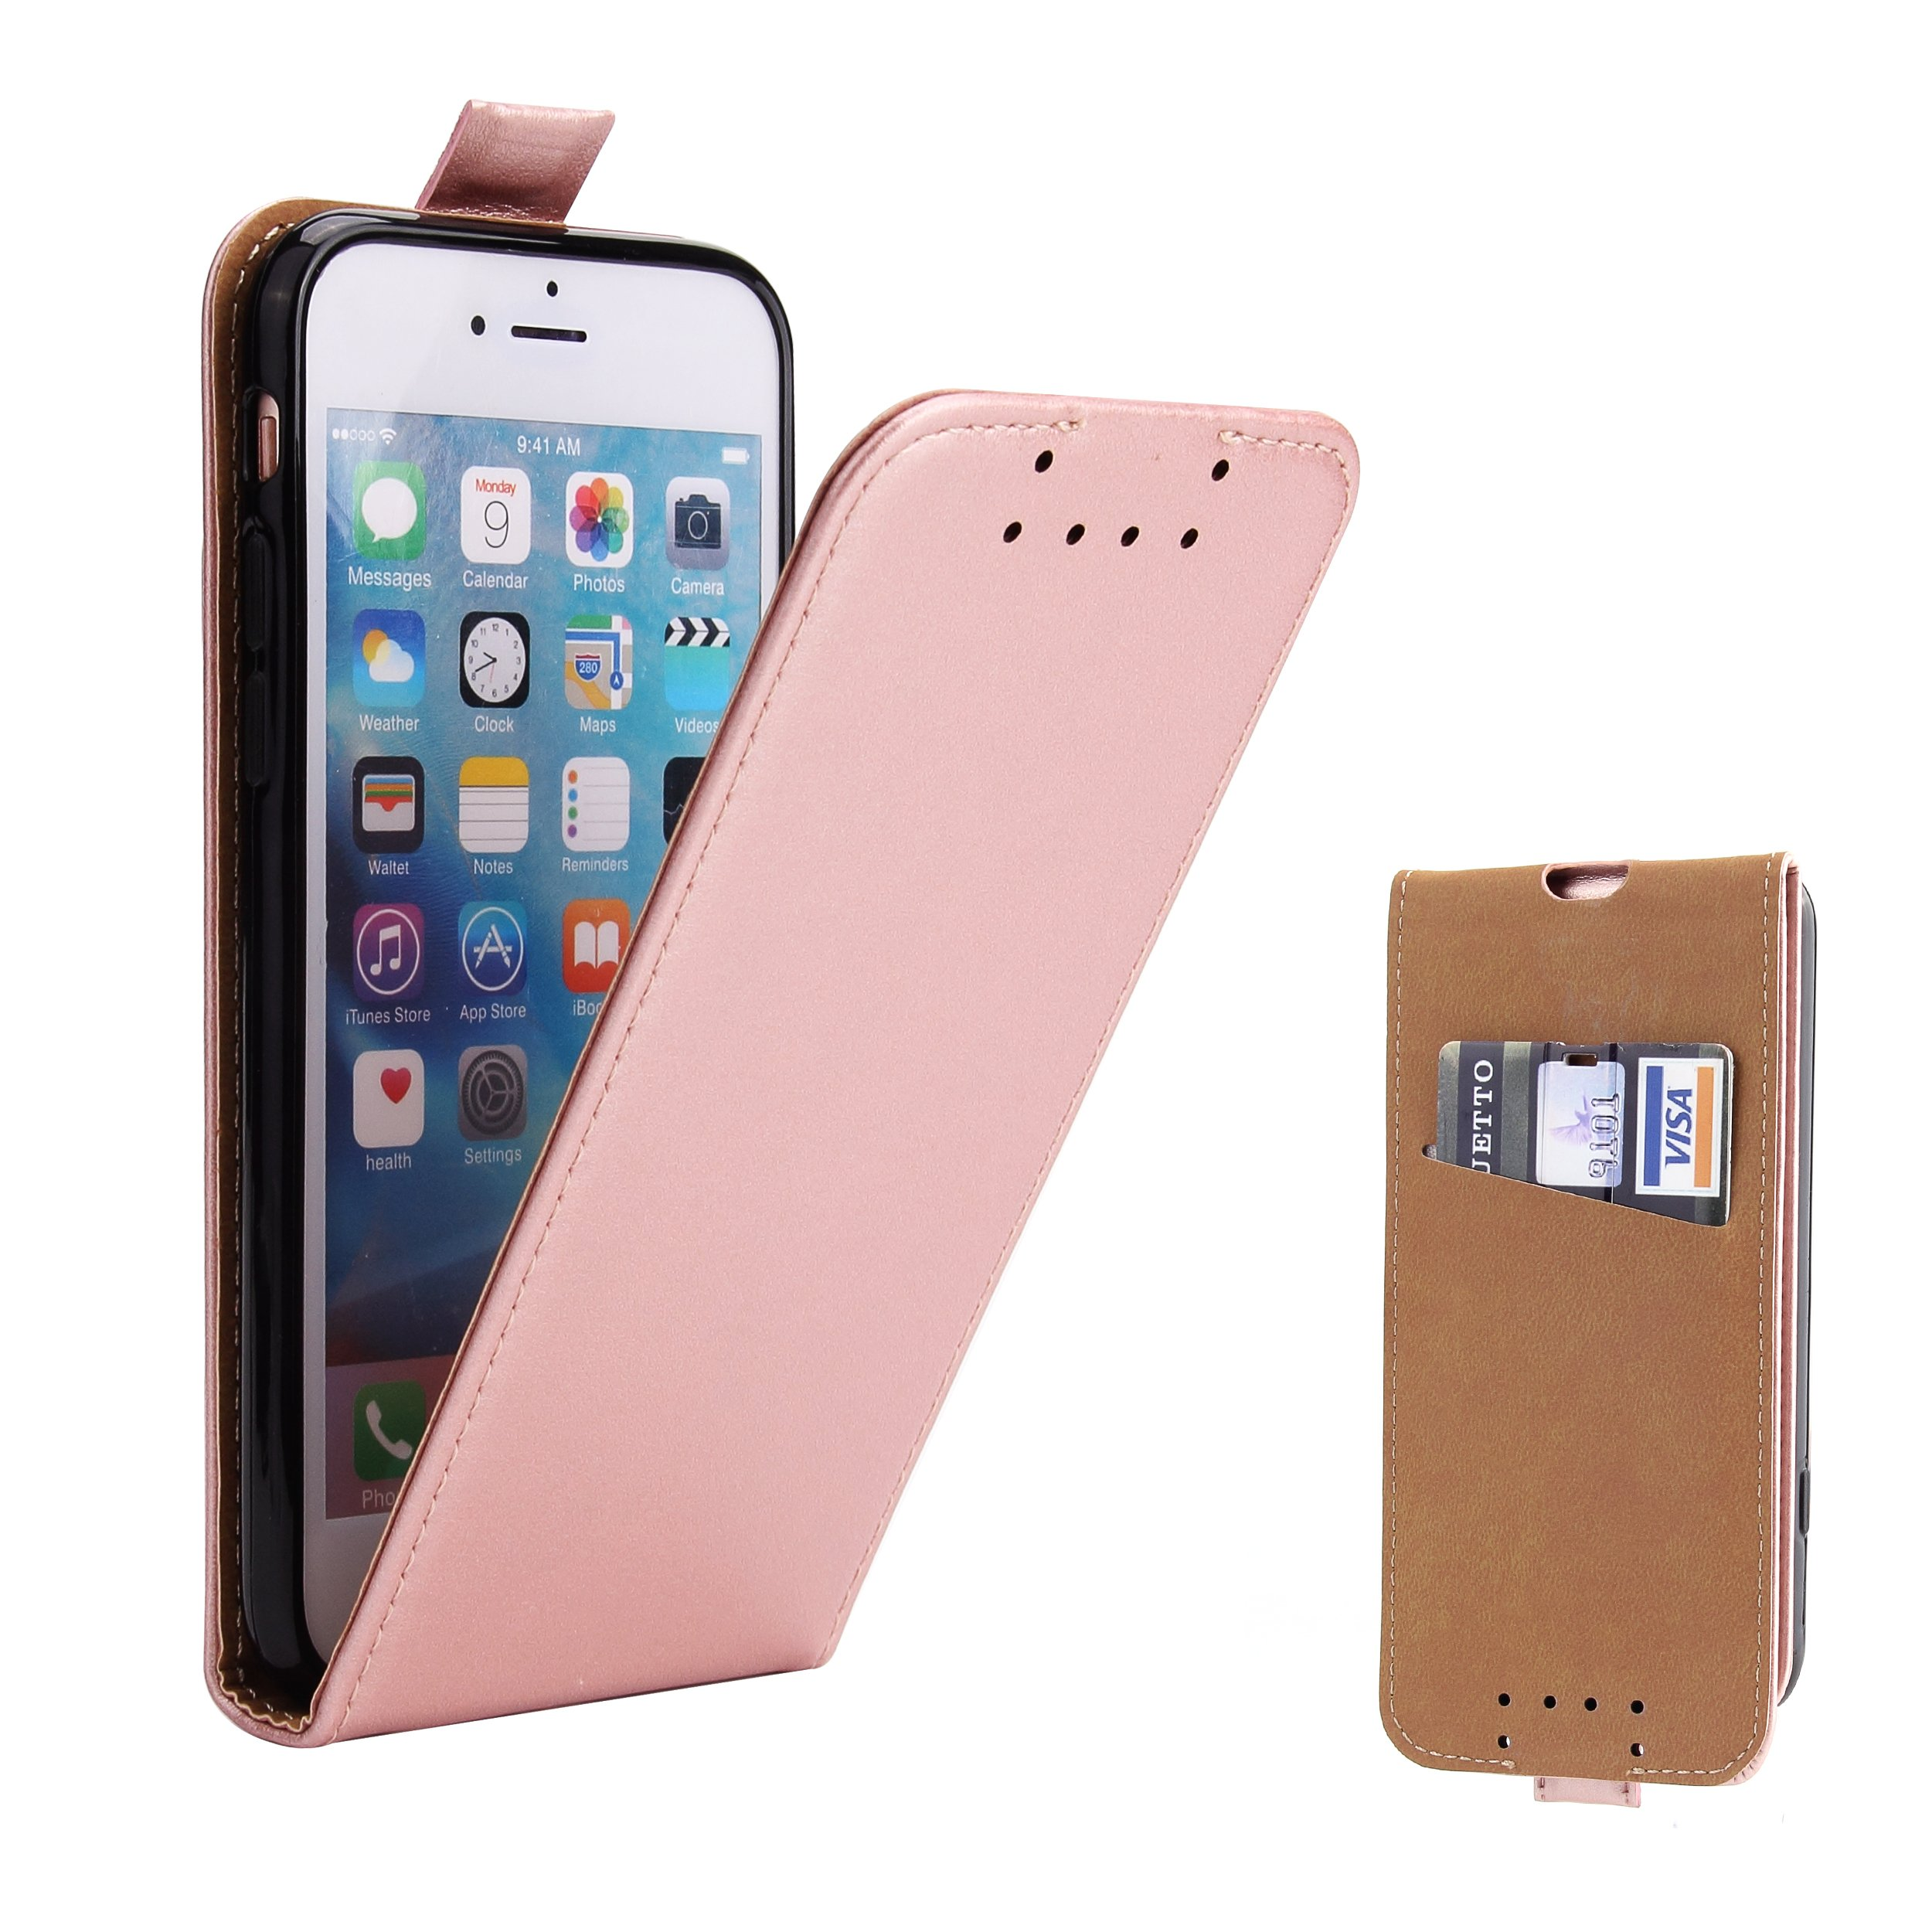 iPhone 7 Case, iPhone 8 Case, Supad [Credit Card Slot] Flip Leather Phone Case Cover for iPhone 7/8 with Magnetic Closure (Black)